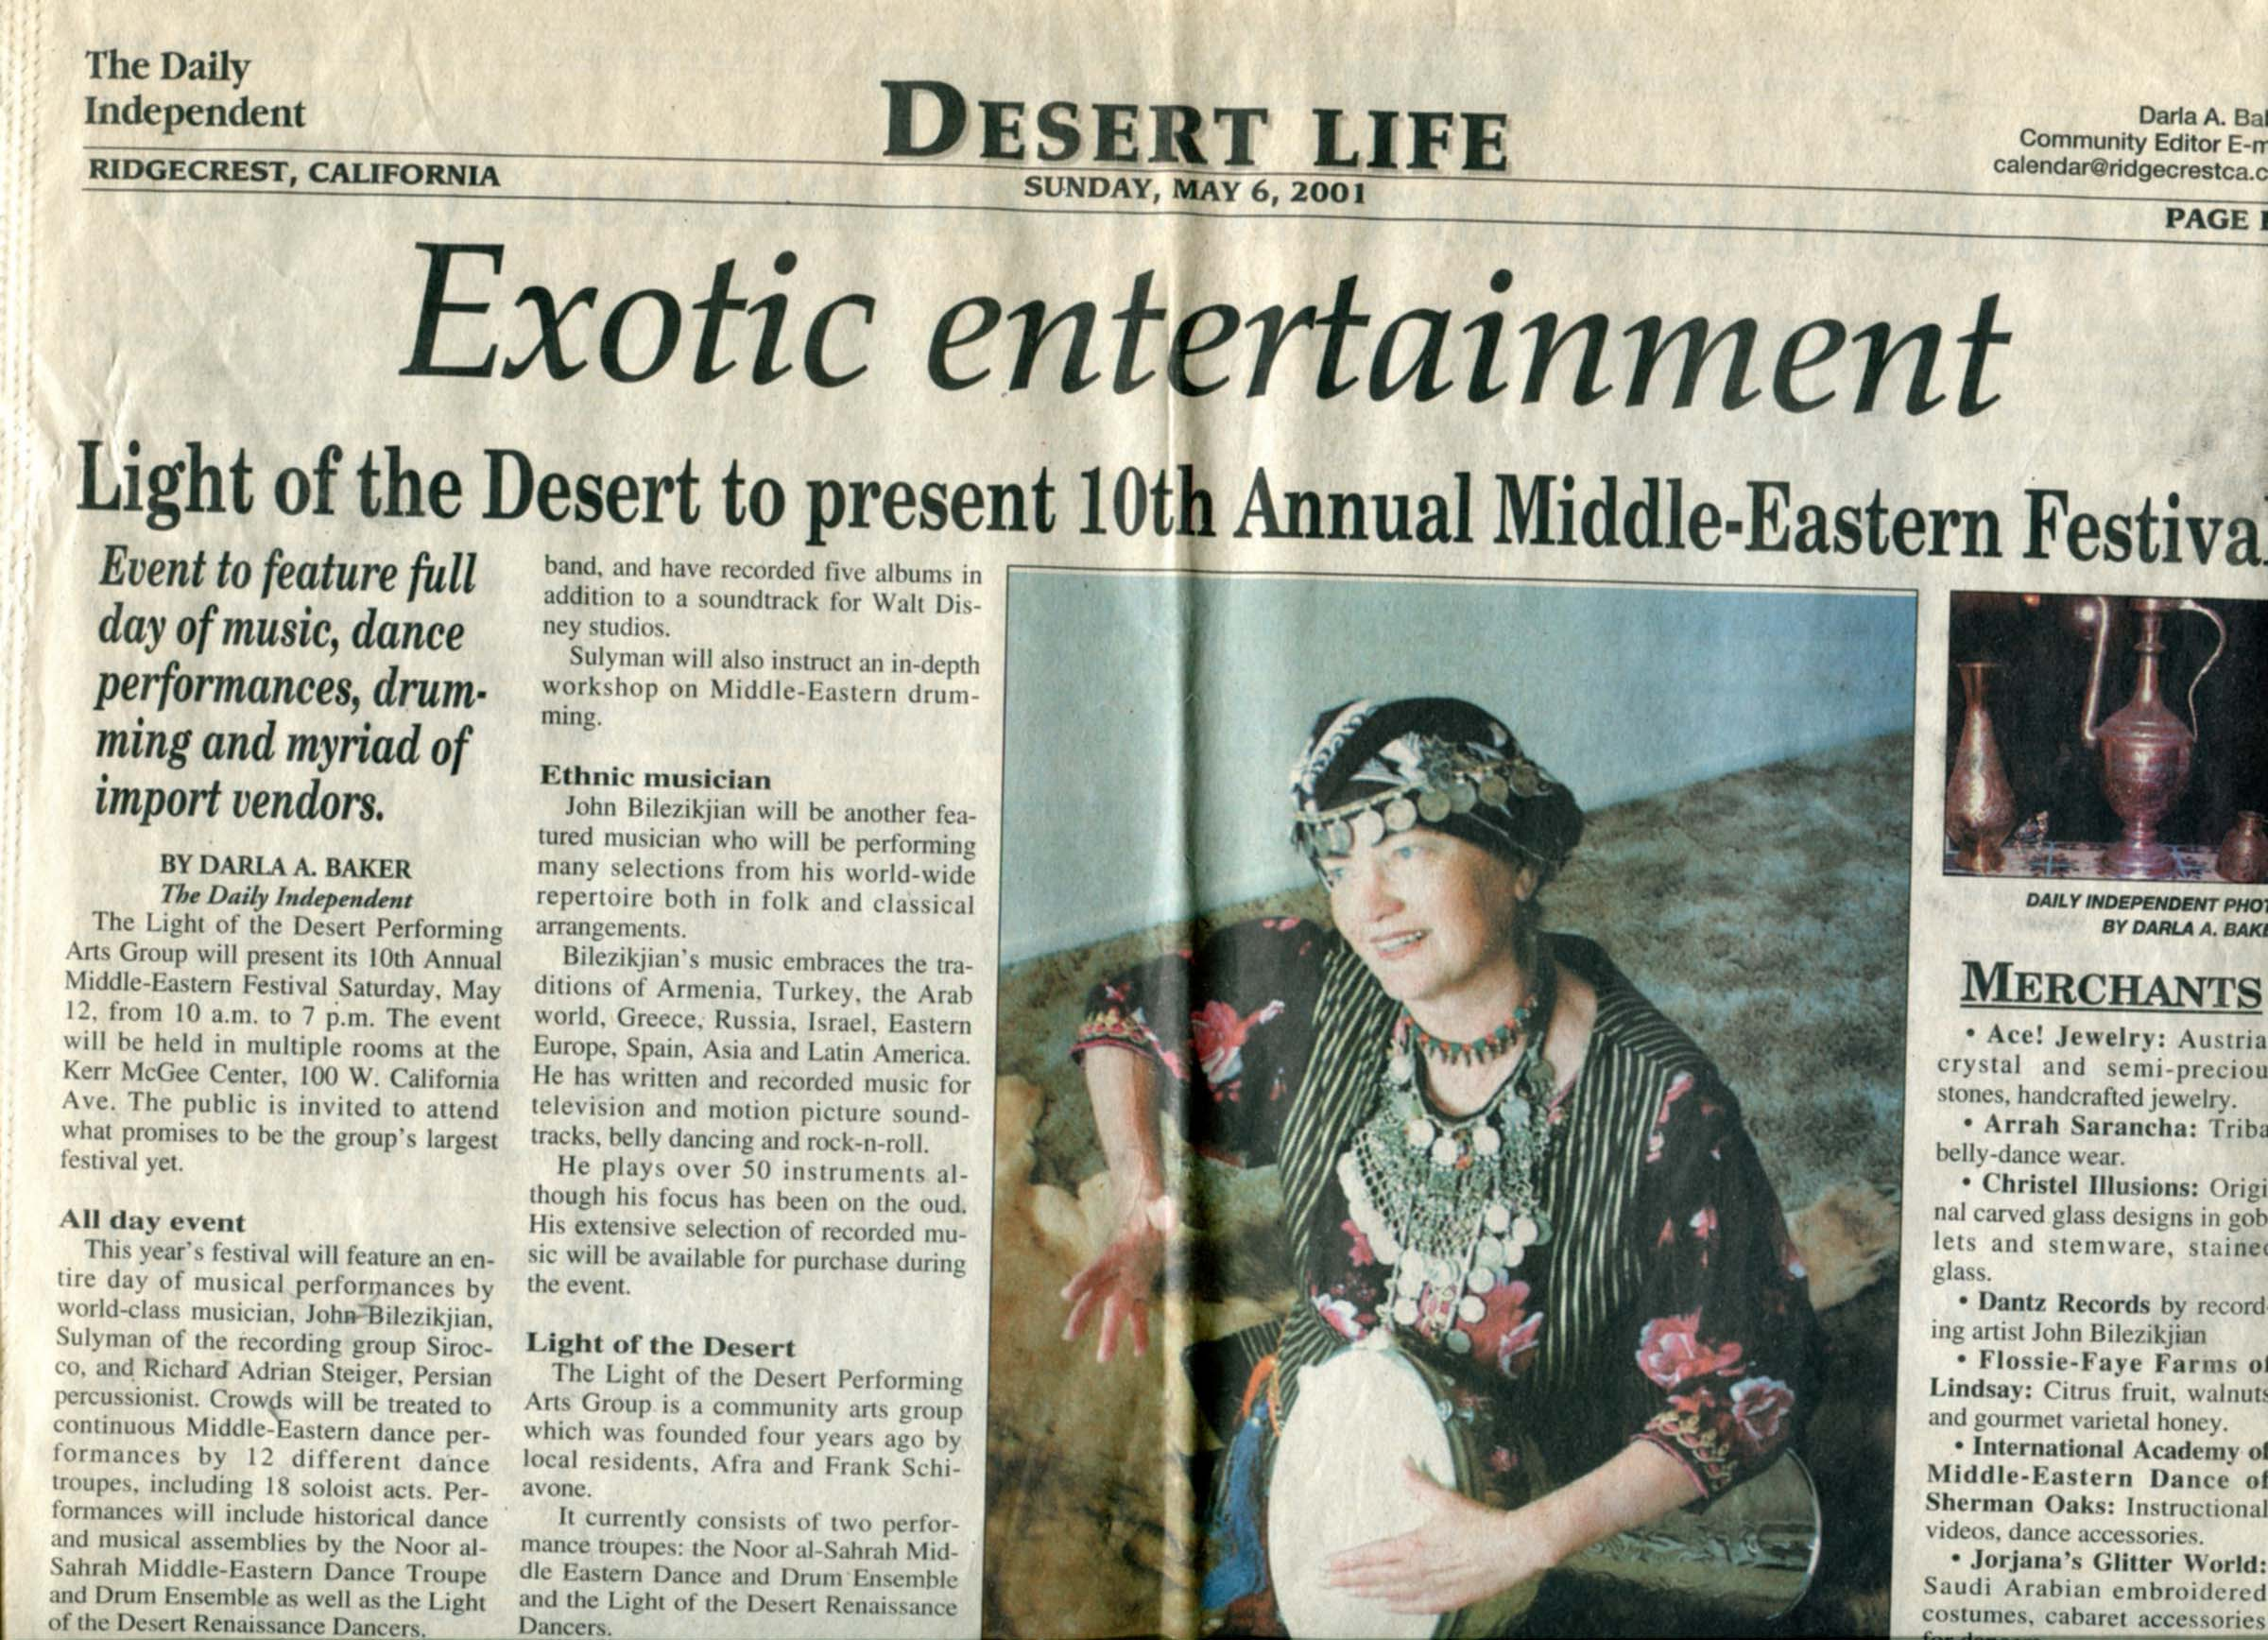 2001 Drum lecture/demo for Mid=Eastern Festival, Ridgecrest CA